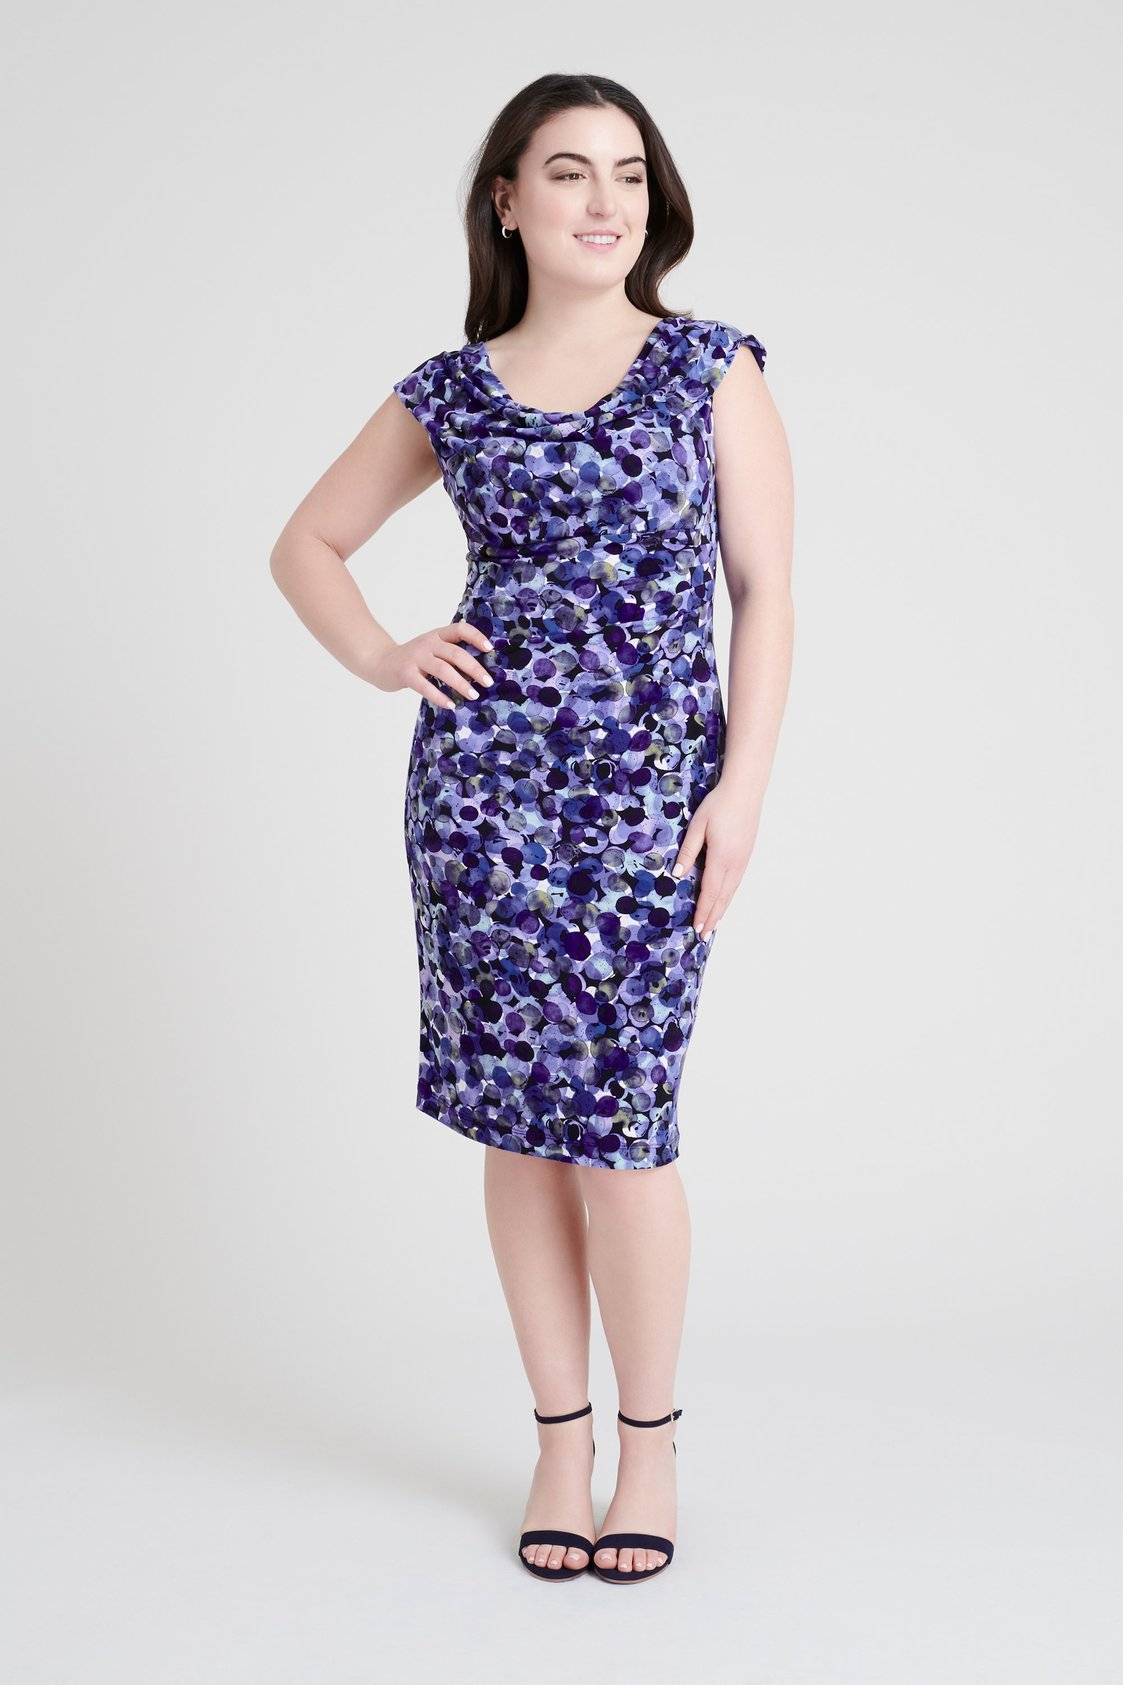 young woman posing in a studio wearing a knee-length vintage style multi-hue purple bubble dot sleeveless dress with cowl neckline from connected apparel